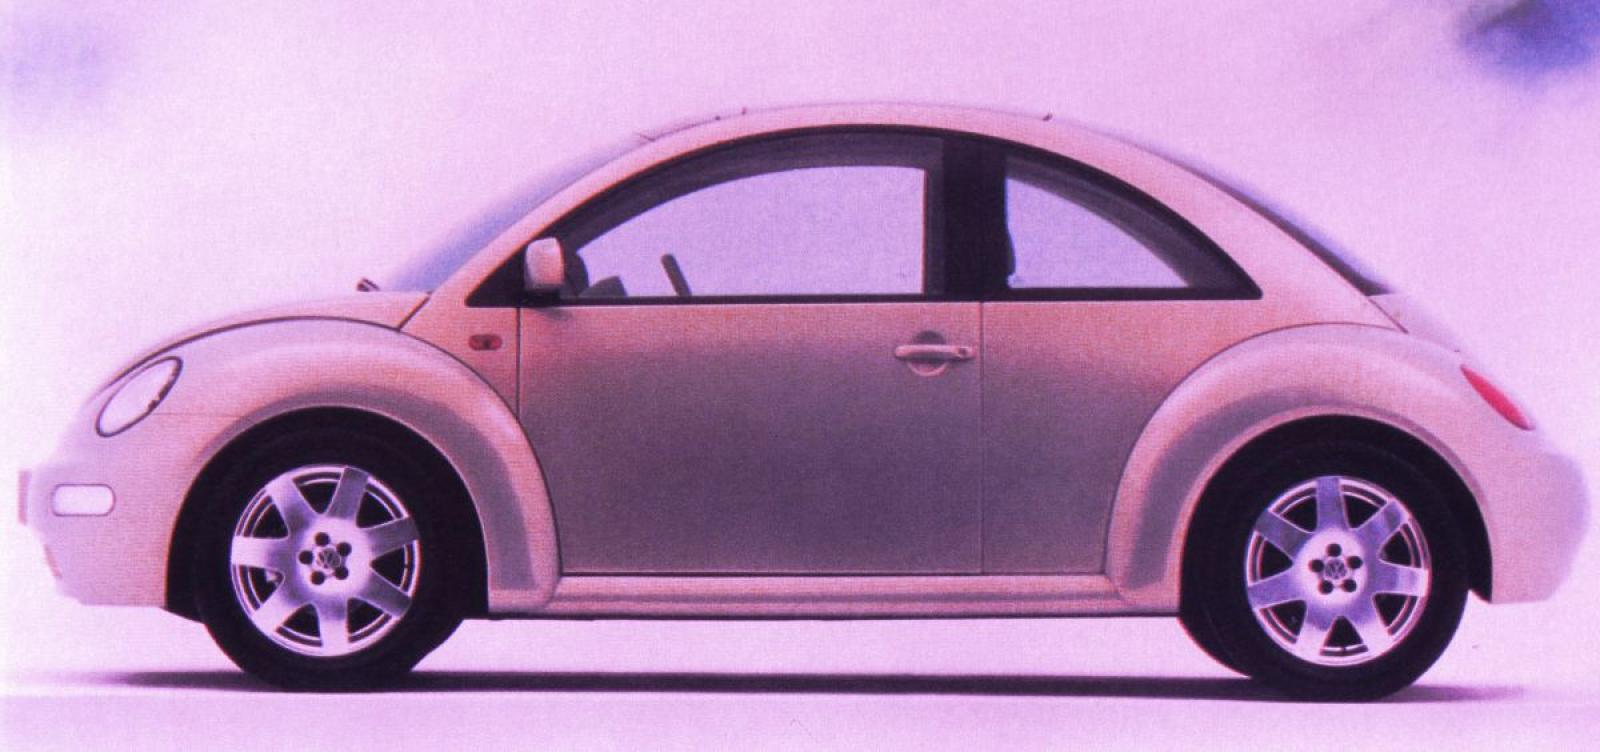 1998 volkswagen new beetle information and photos zombiedrive. Black Bedroom Furniture Sets. Home Design Ideas